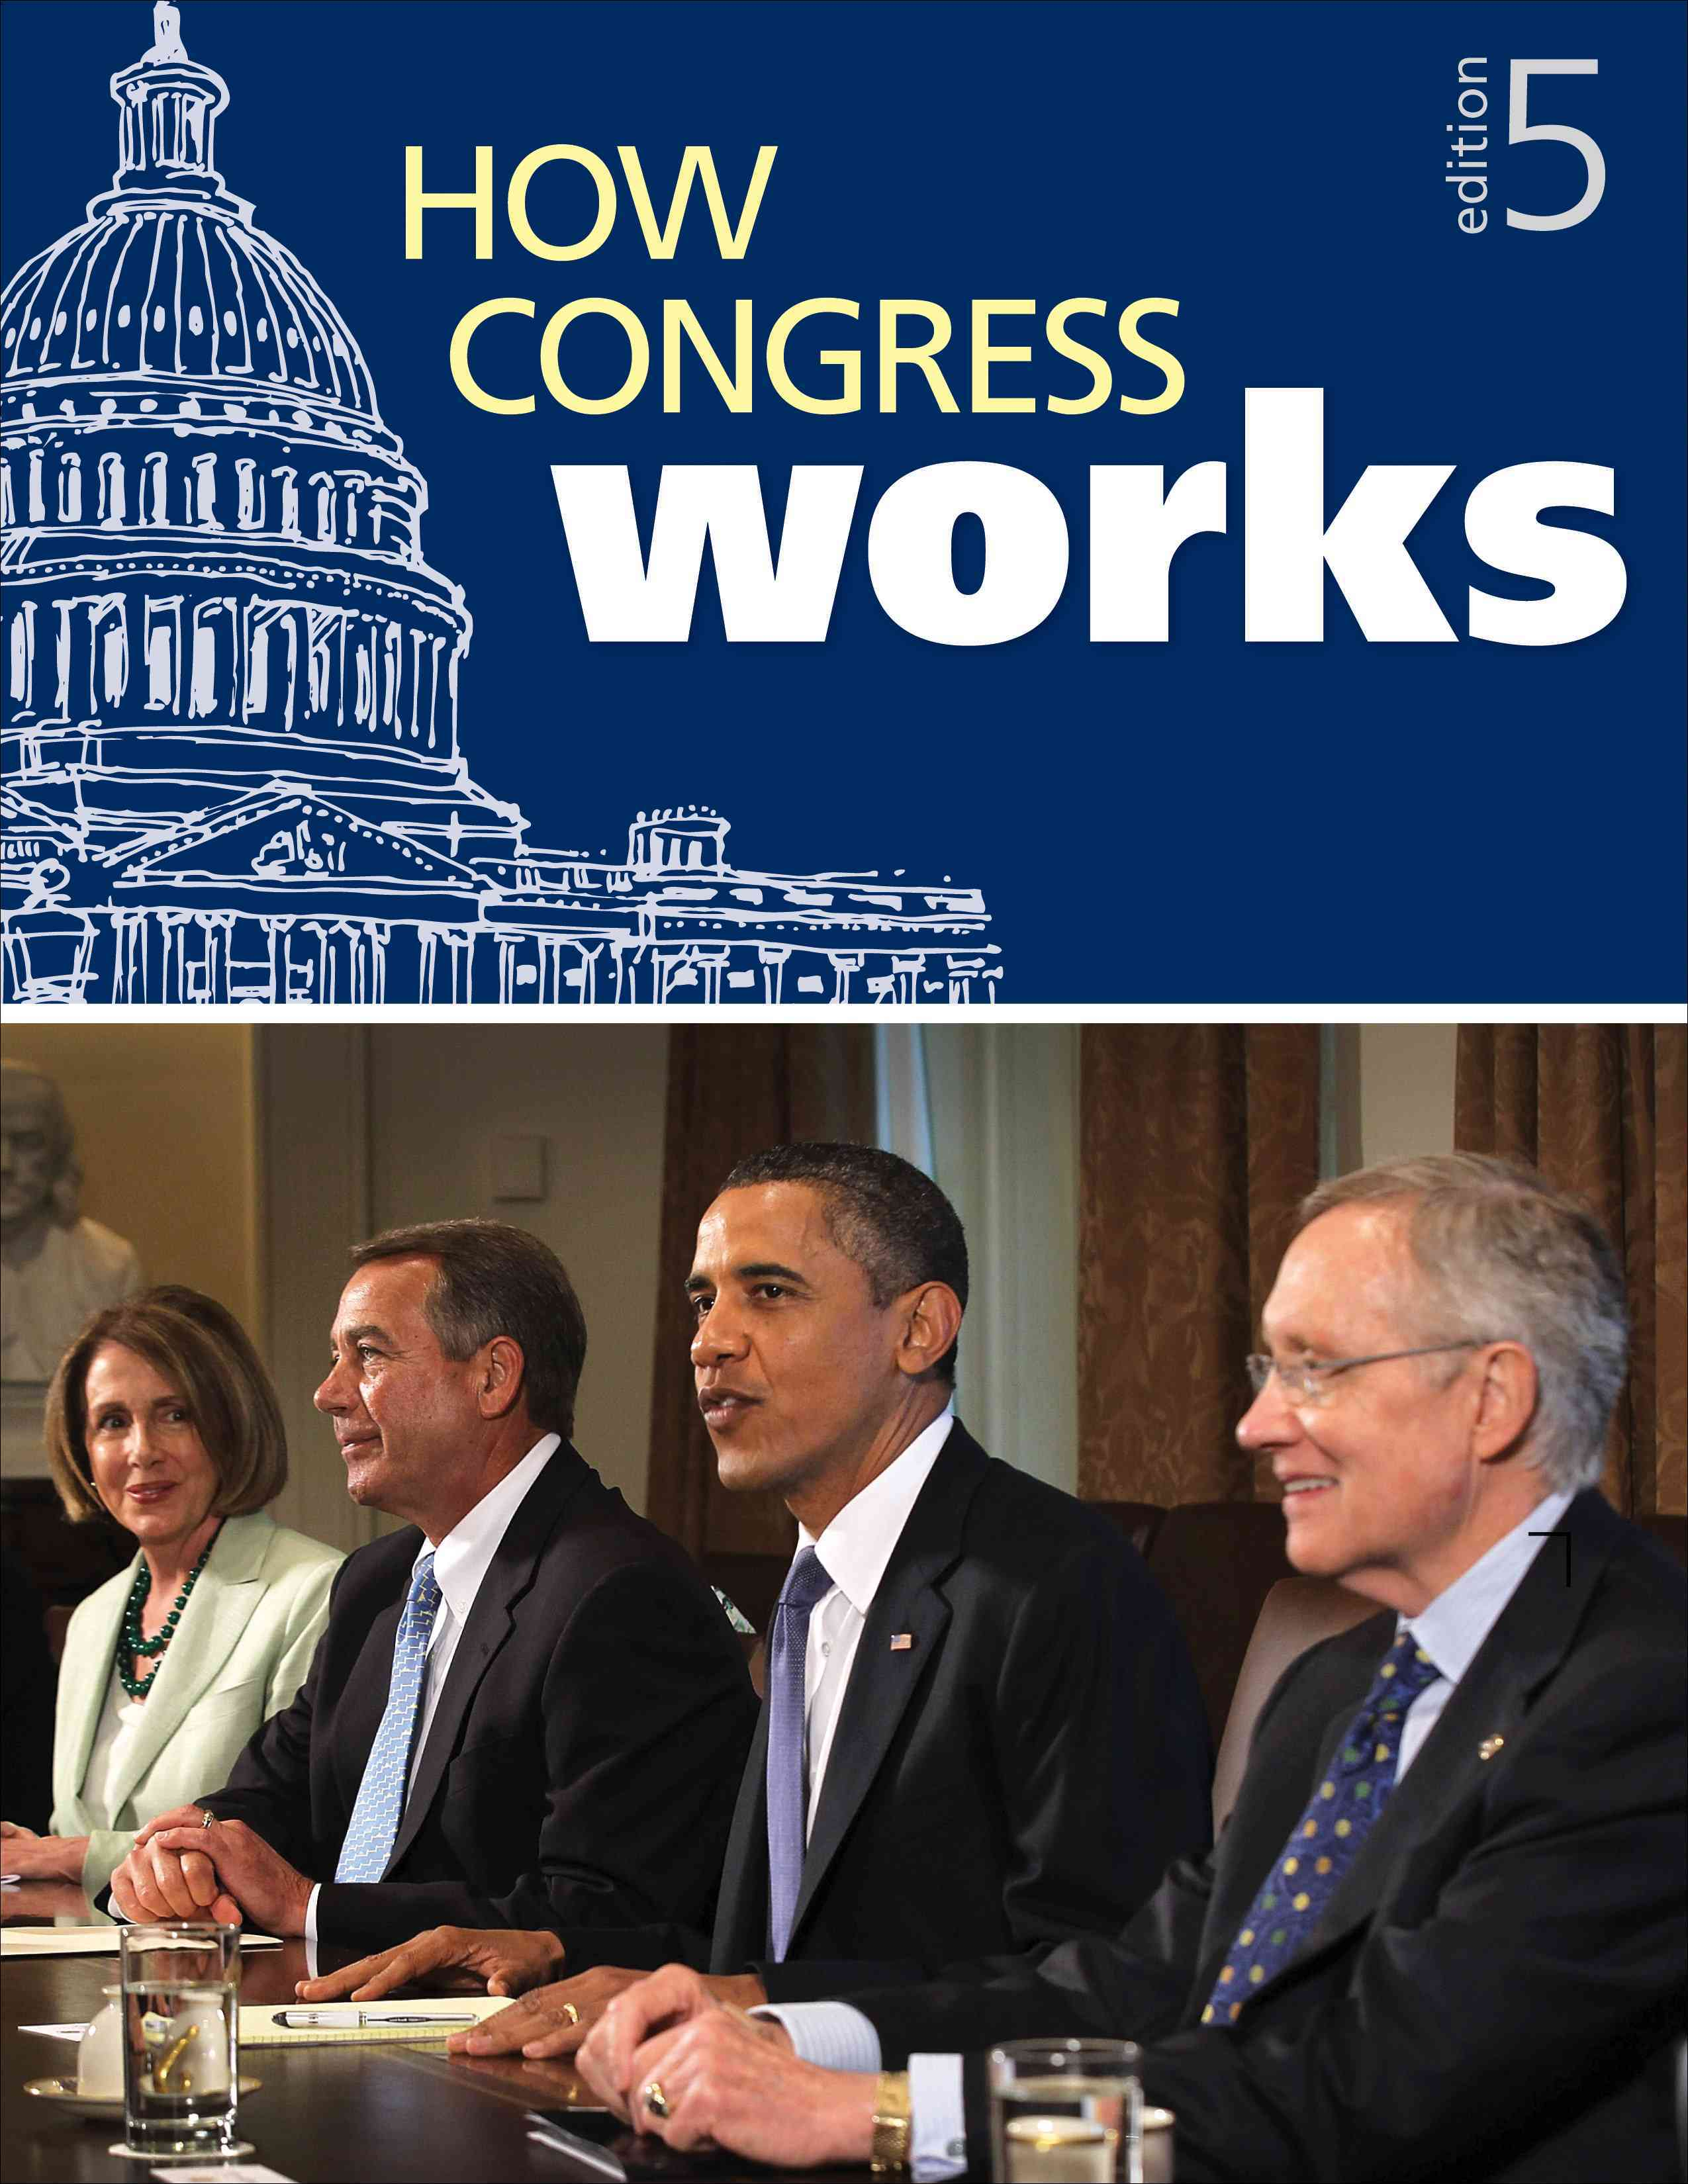 How Congress Works By Congessional Quarterly, Inc. (COR)